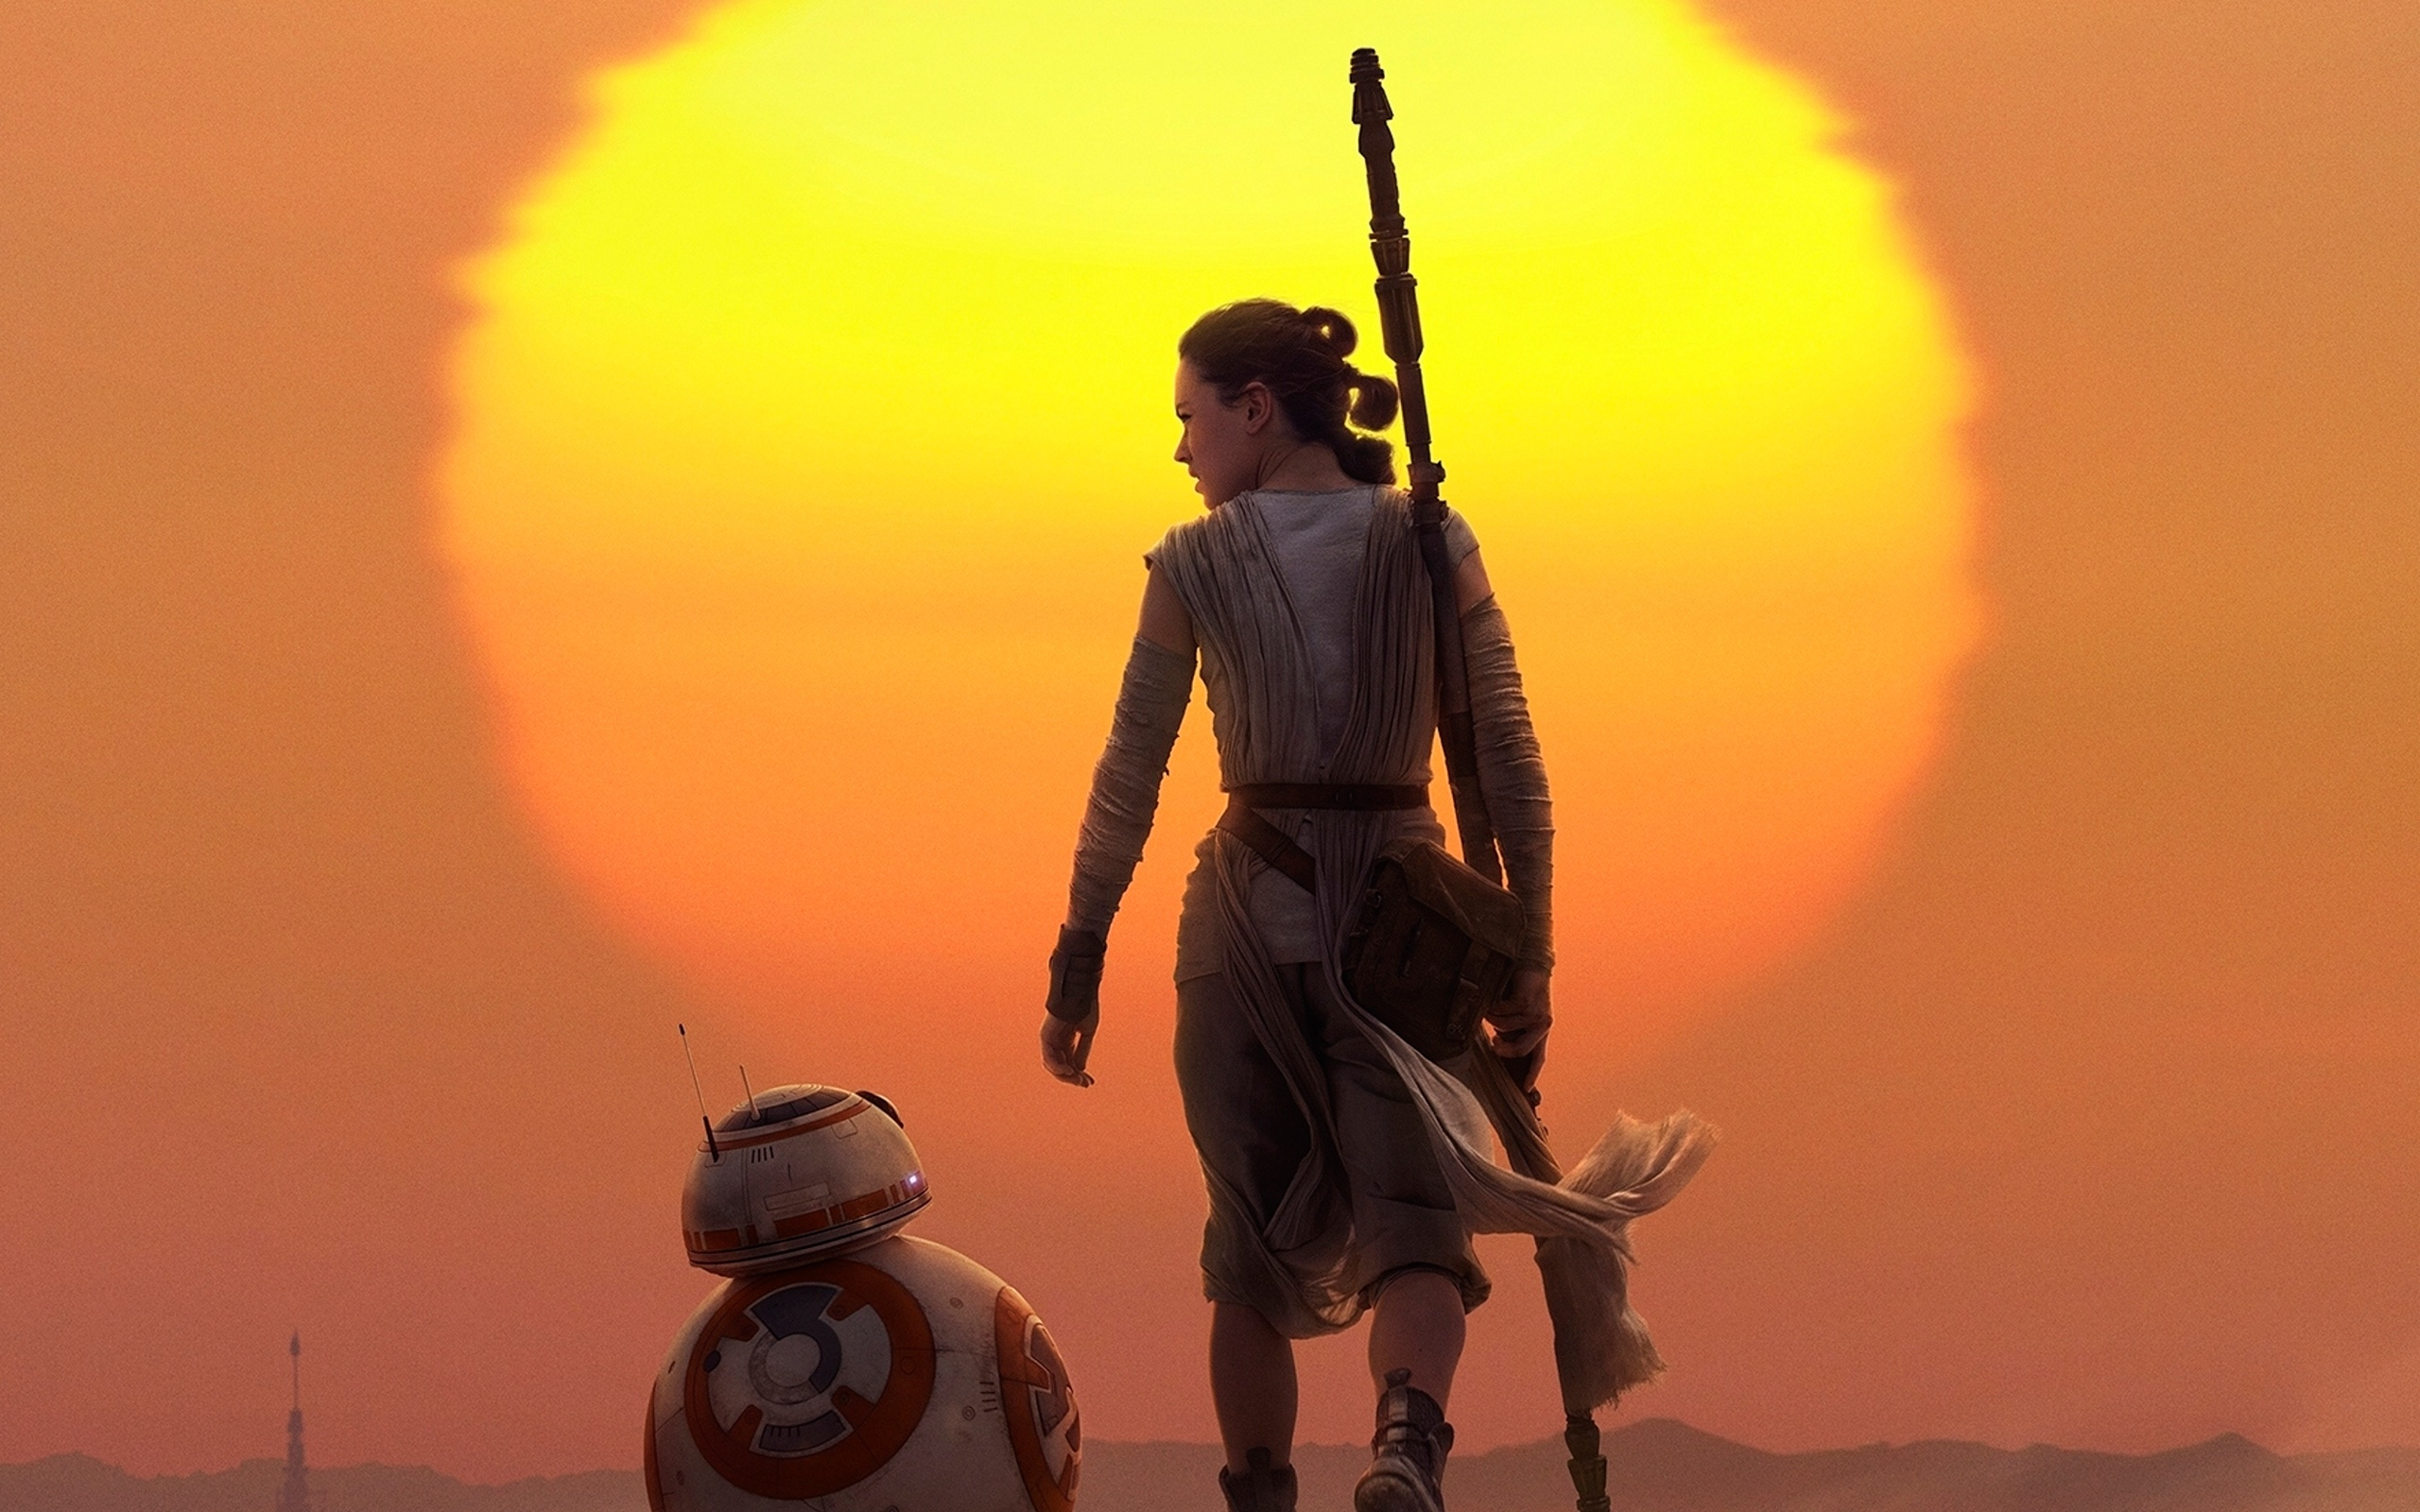 Rey BB 8 Star Wars The Force Awakens Wallpapers HD Wallpapers 2560x1600